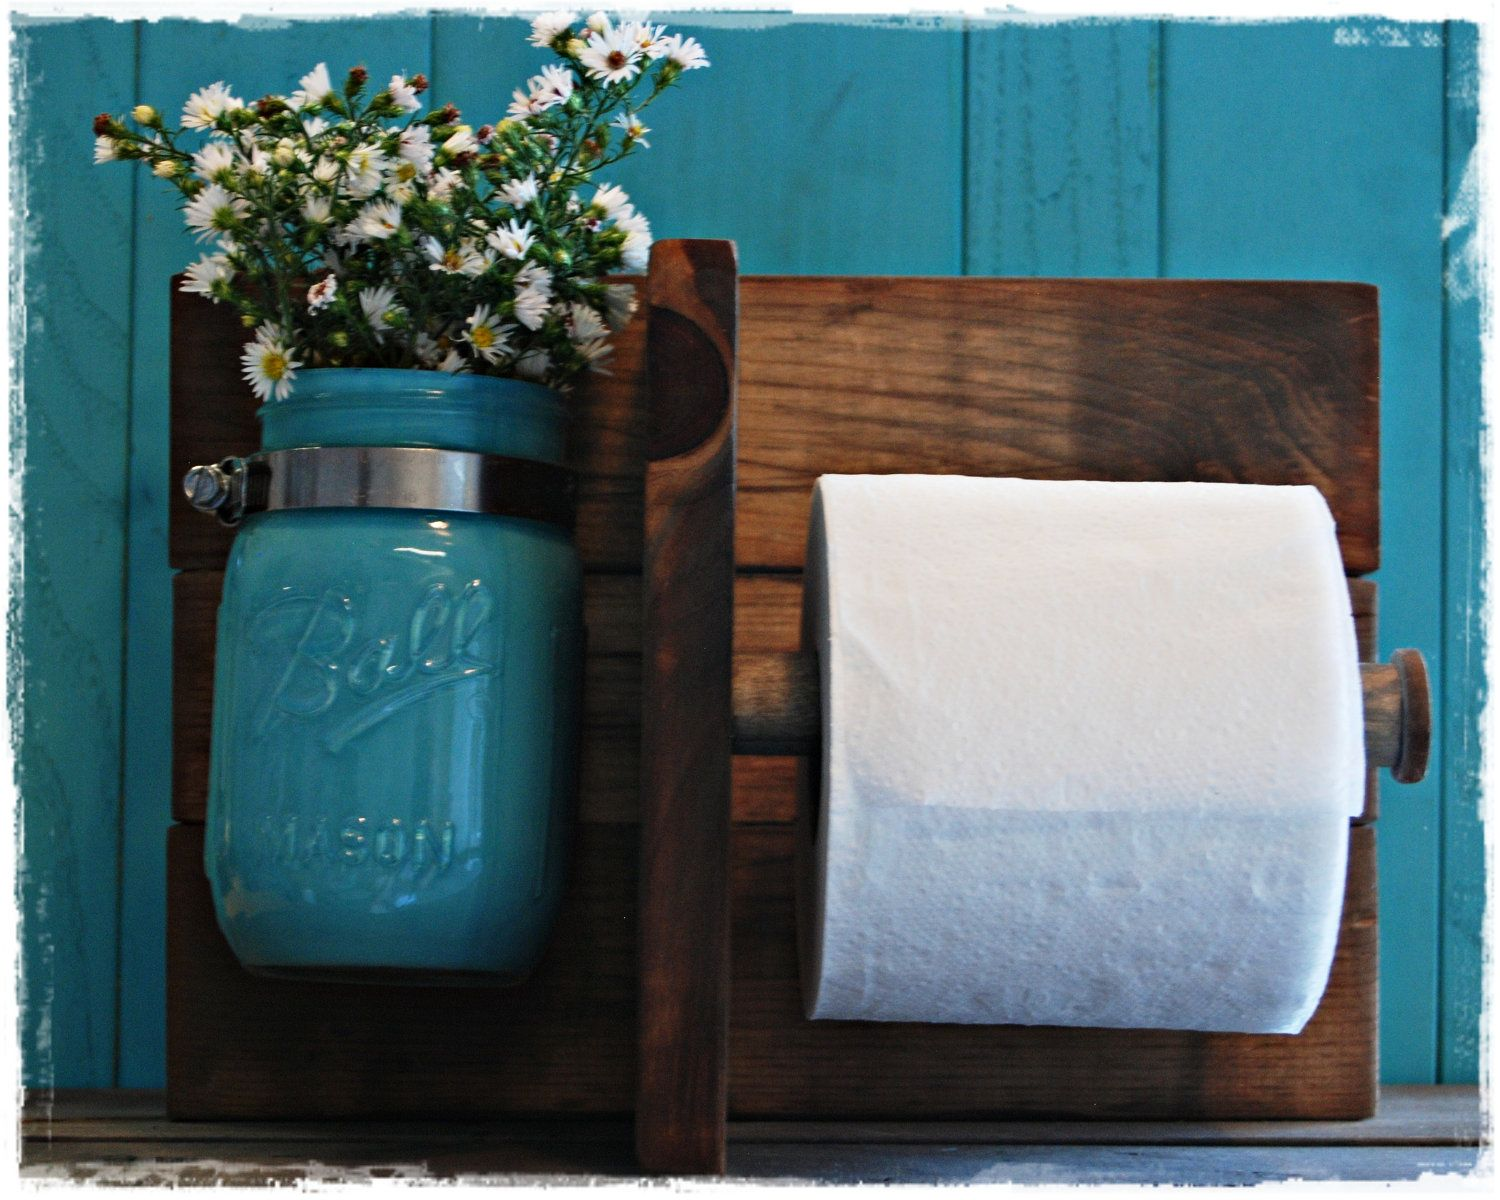 Rustic Toilet Paper Holder Make The Potty Room Smell Good With Flowers Decorating